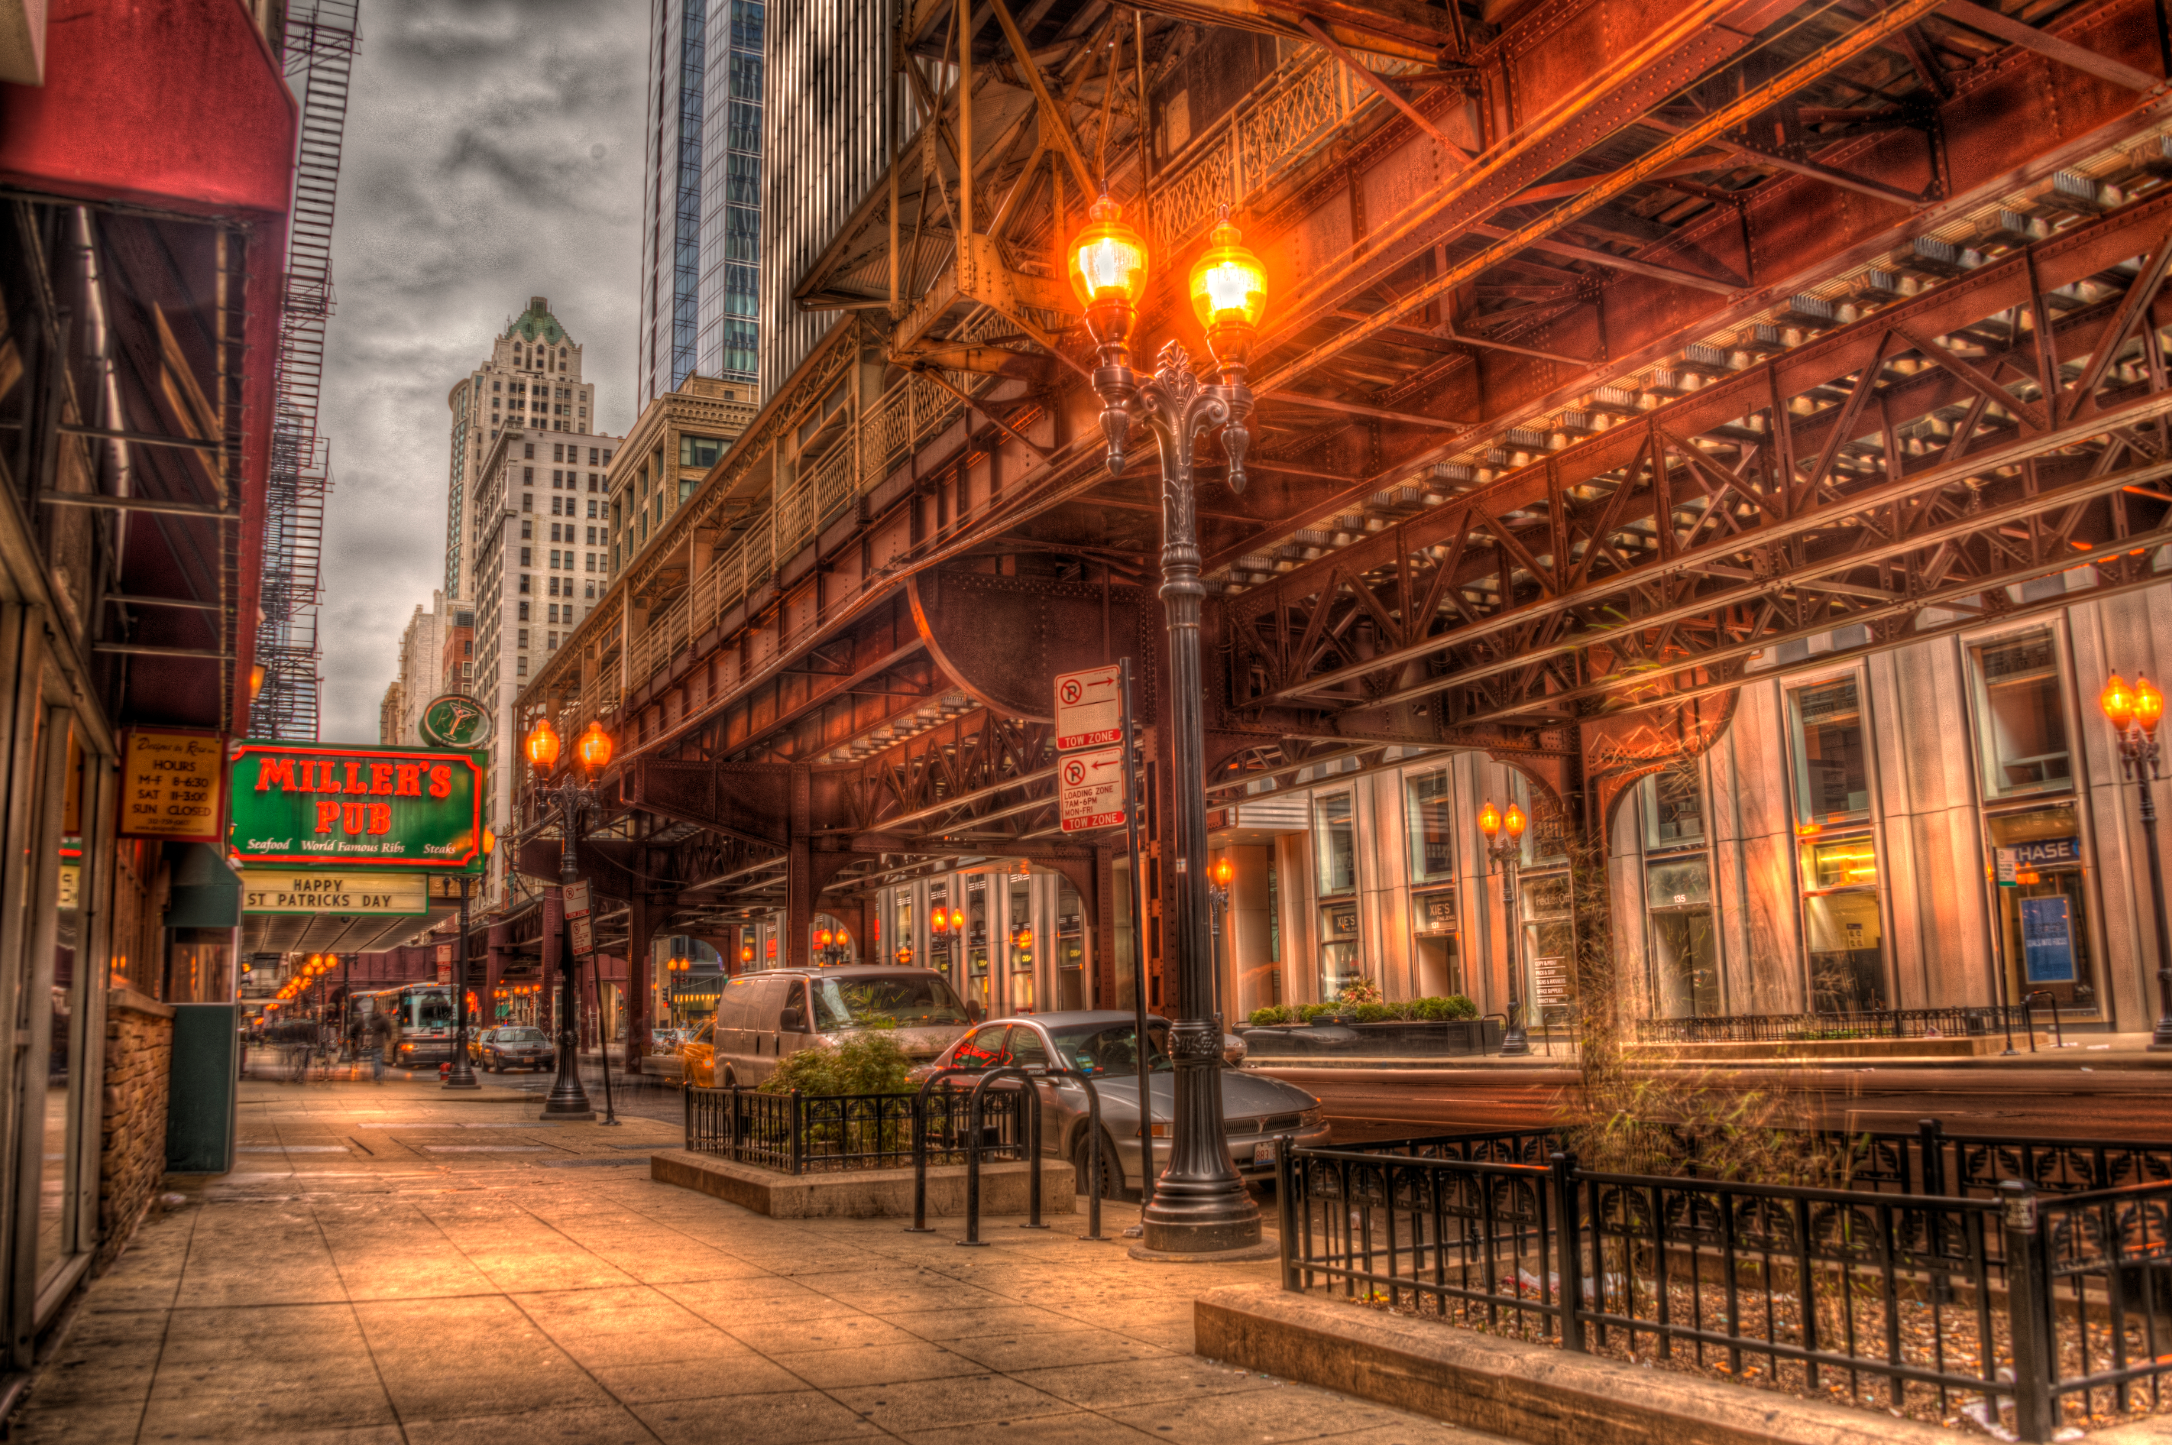 Chicago - Tonemapped image